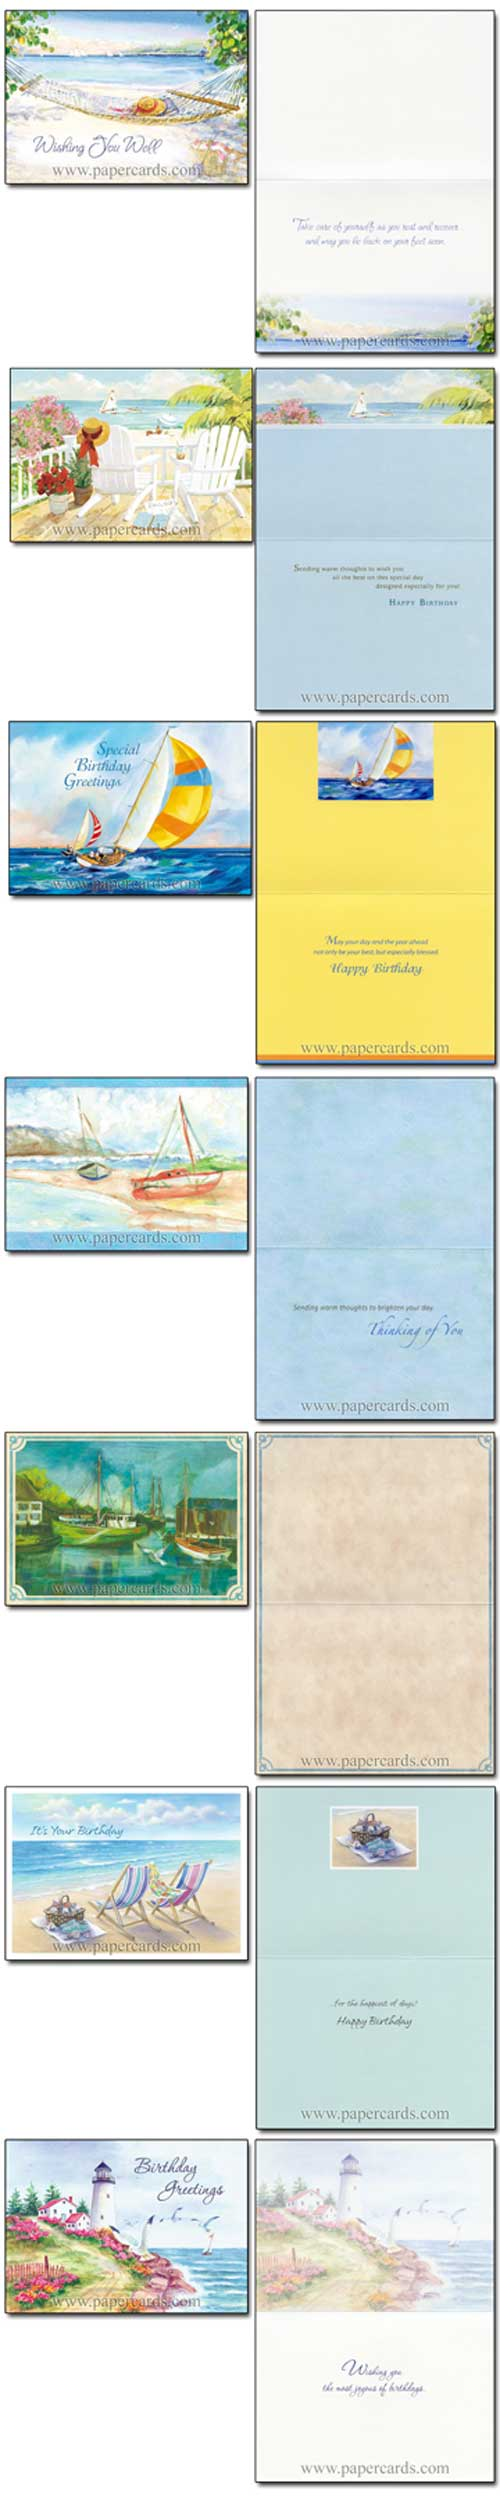 Shoreline Greetings Assortment (24 All Occasion Cards with envelopes) - Boxed All Occasion Cards